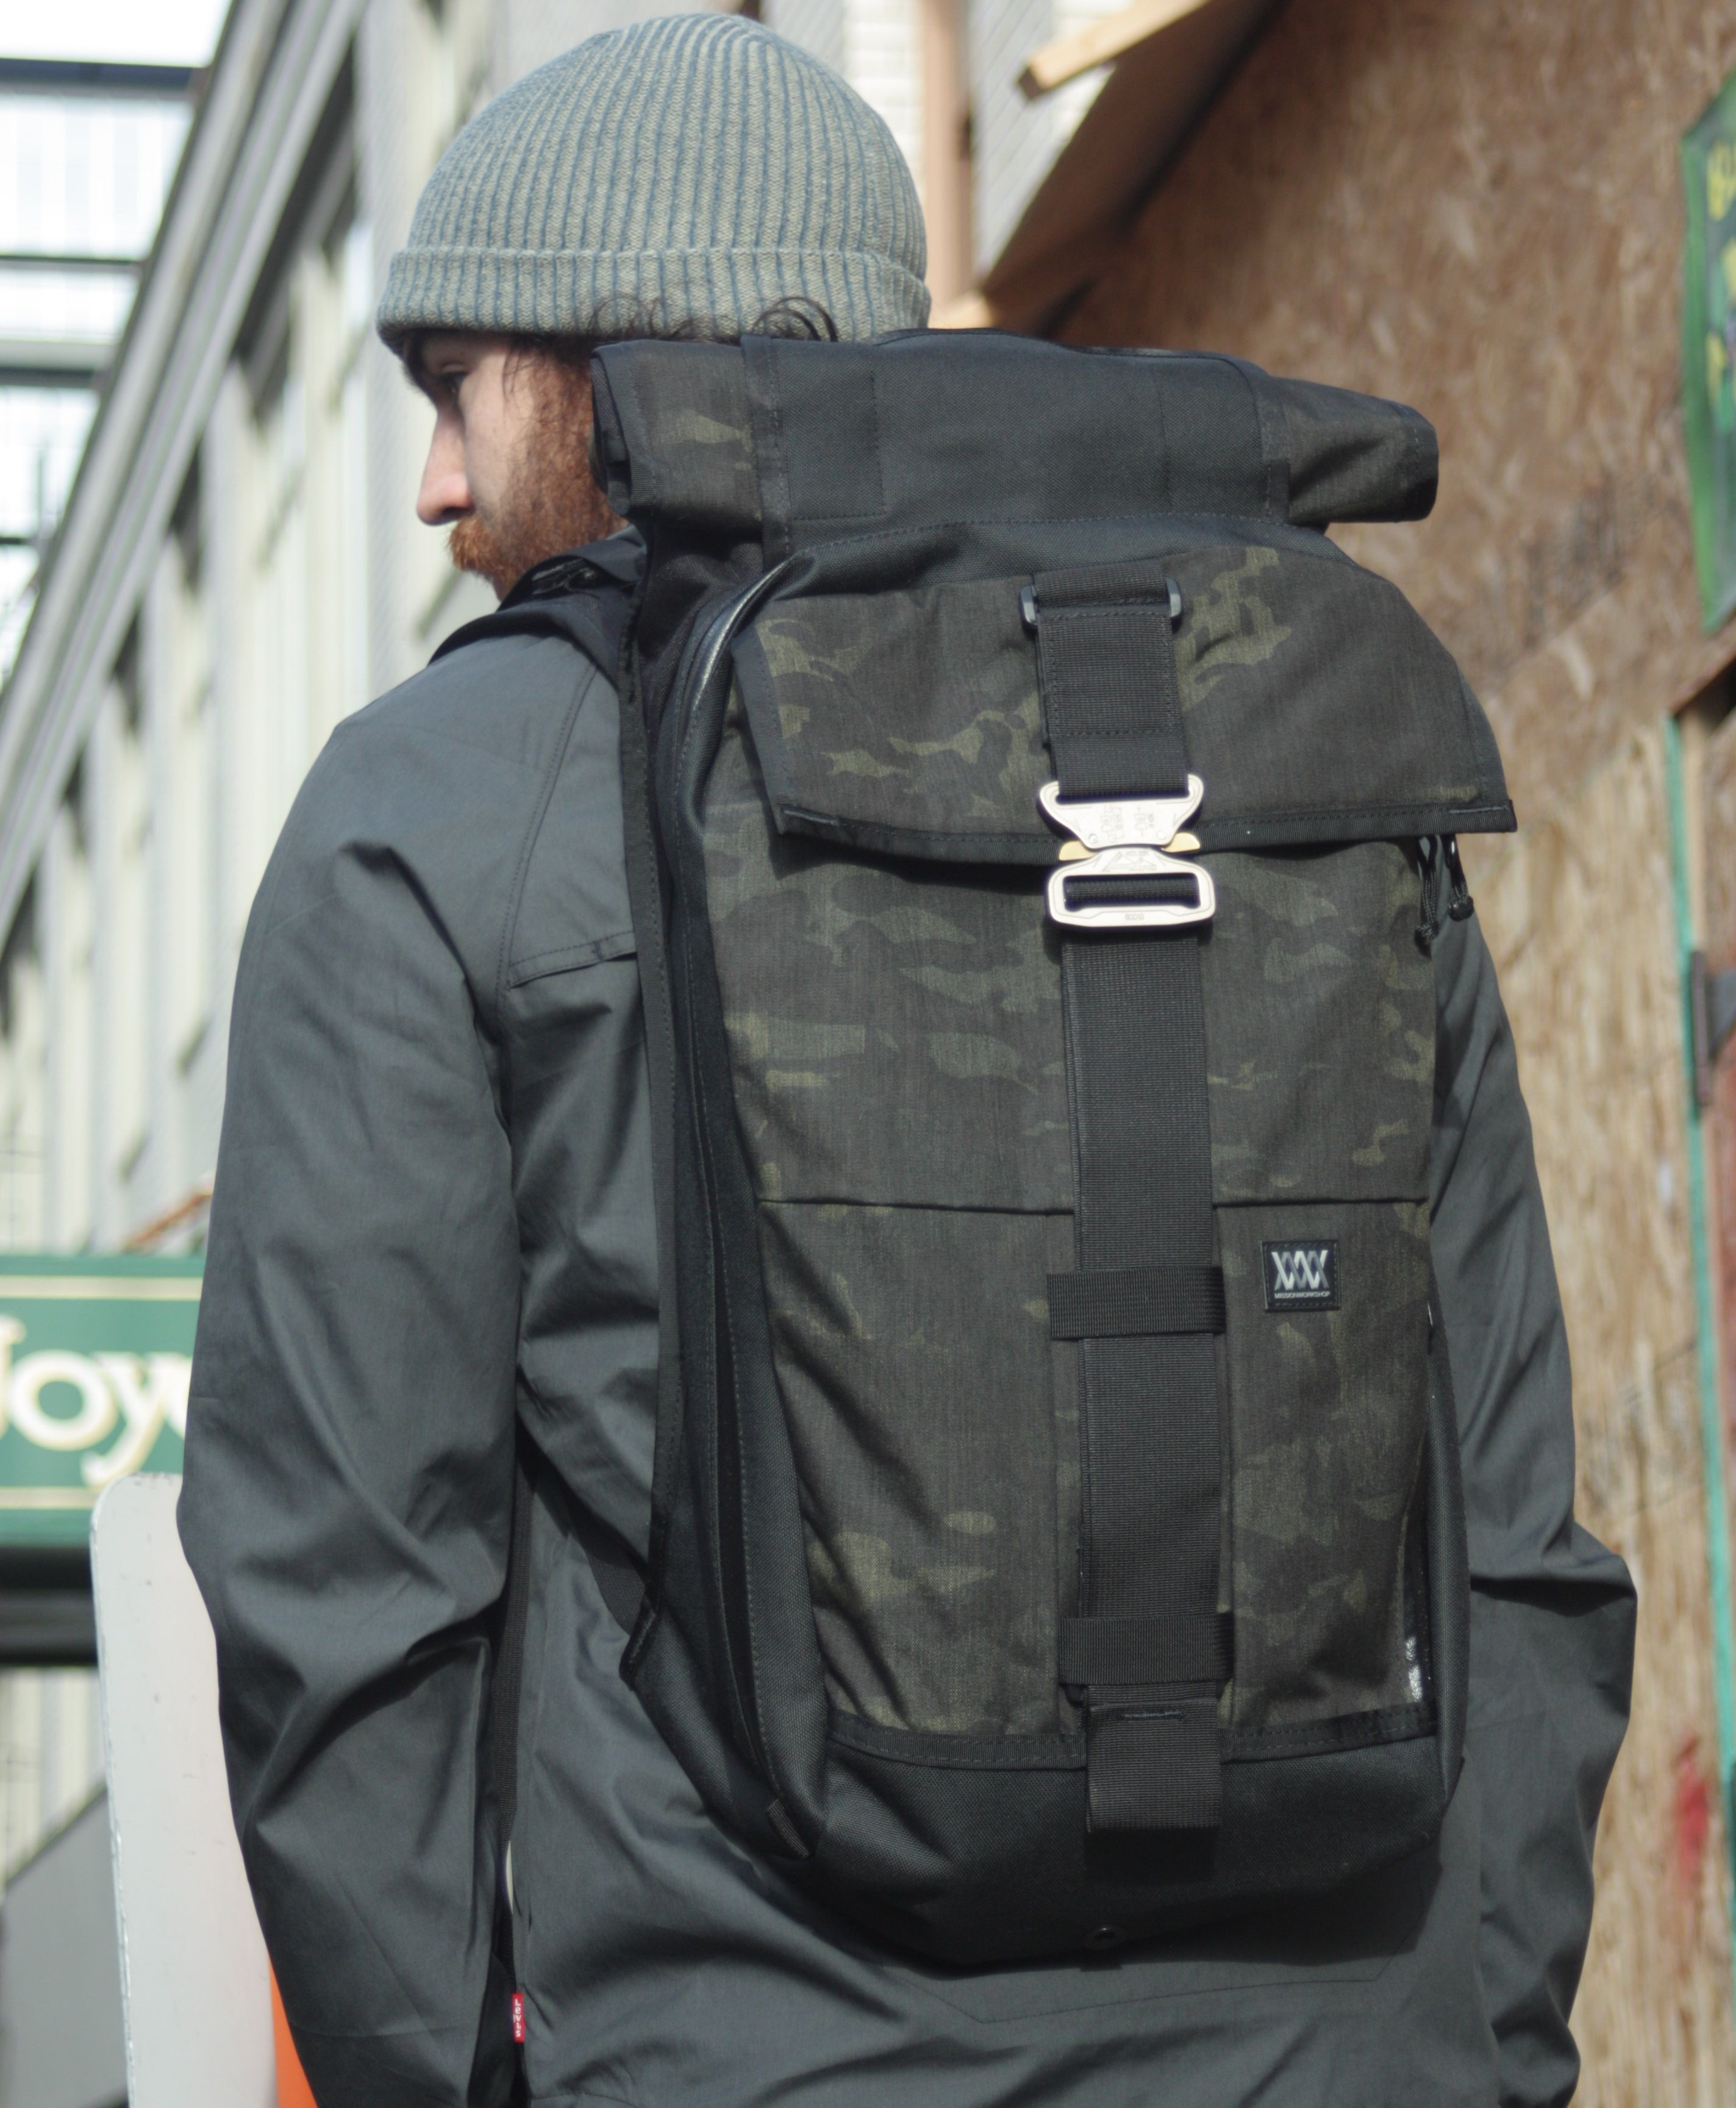 b04816da6b720 The US made Limited Edition black camo Rambler expandable backpack from Mission  Workshop comes with a fine looking buckle from Austrian manufacturer ...